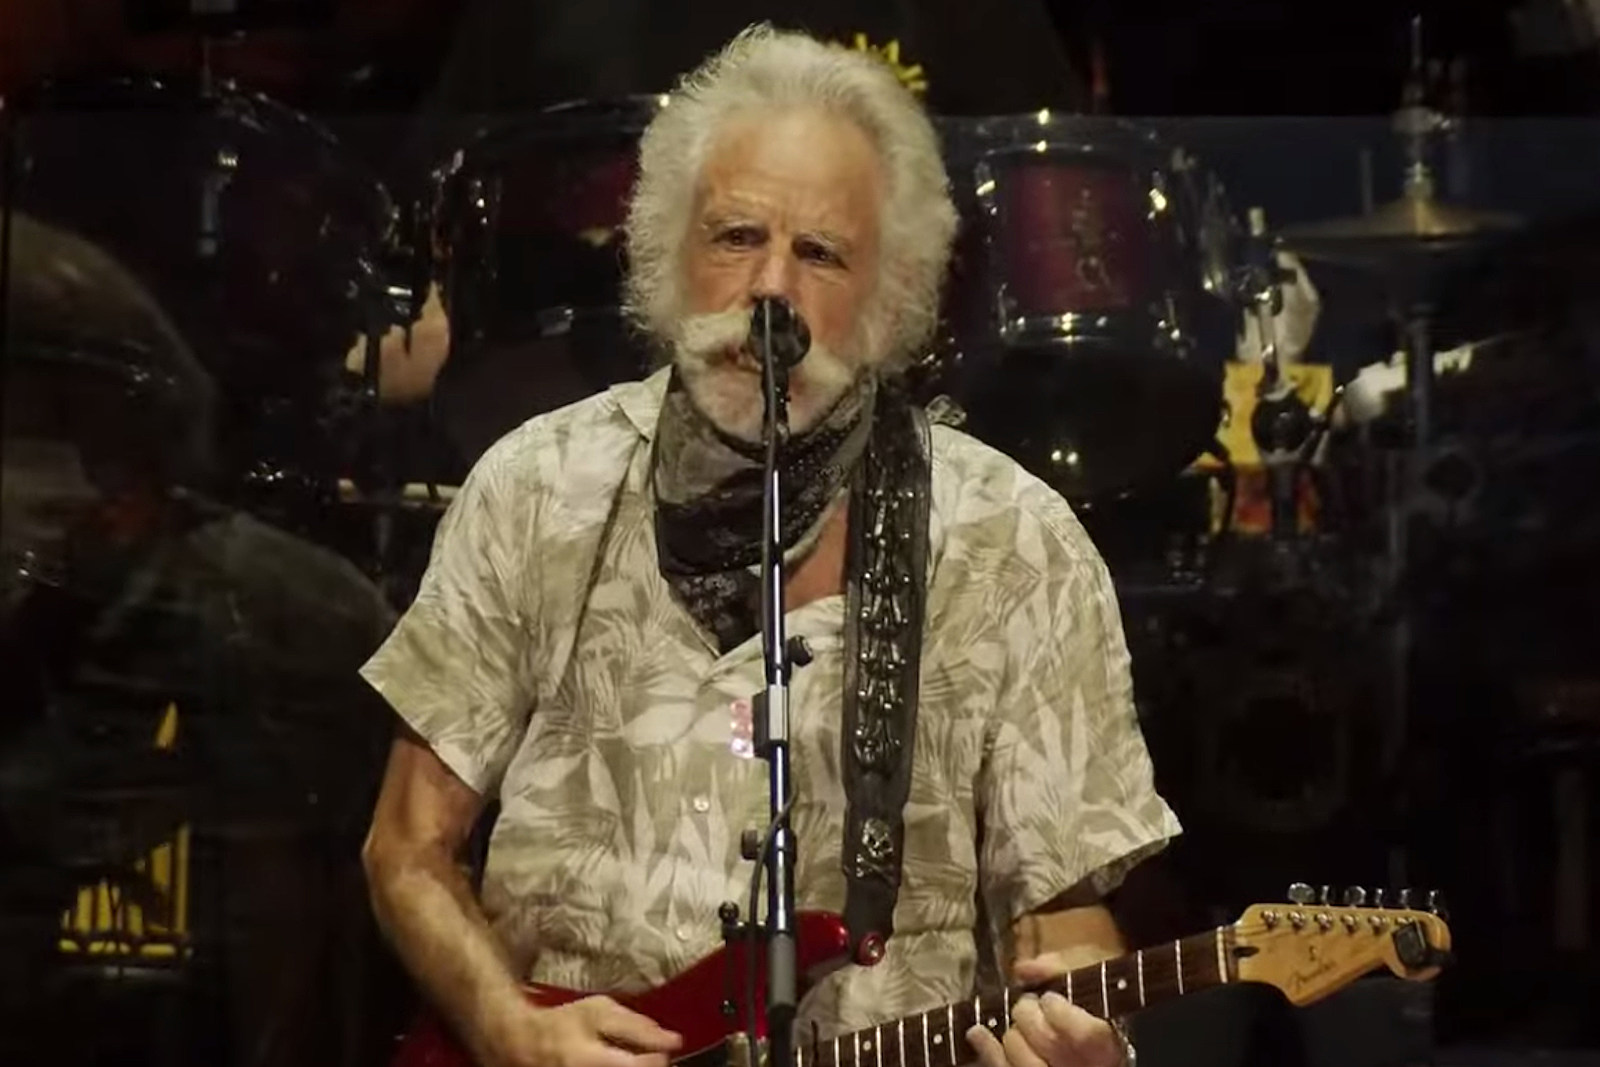 Dead and Company Make Their Concert Return: Set List and Video